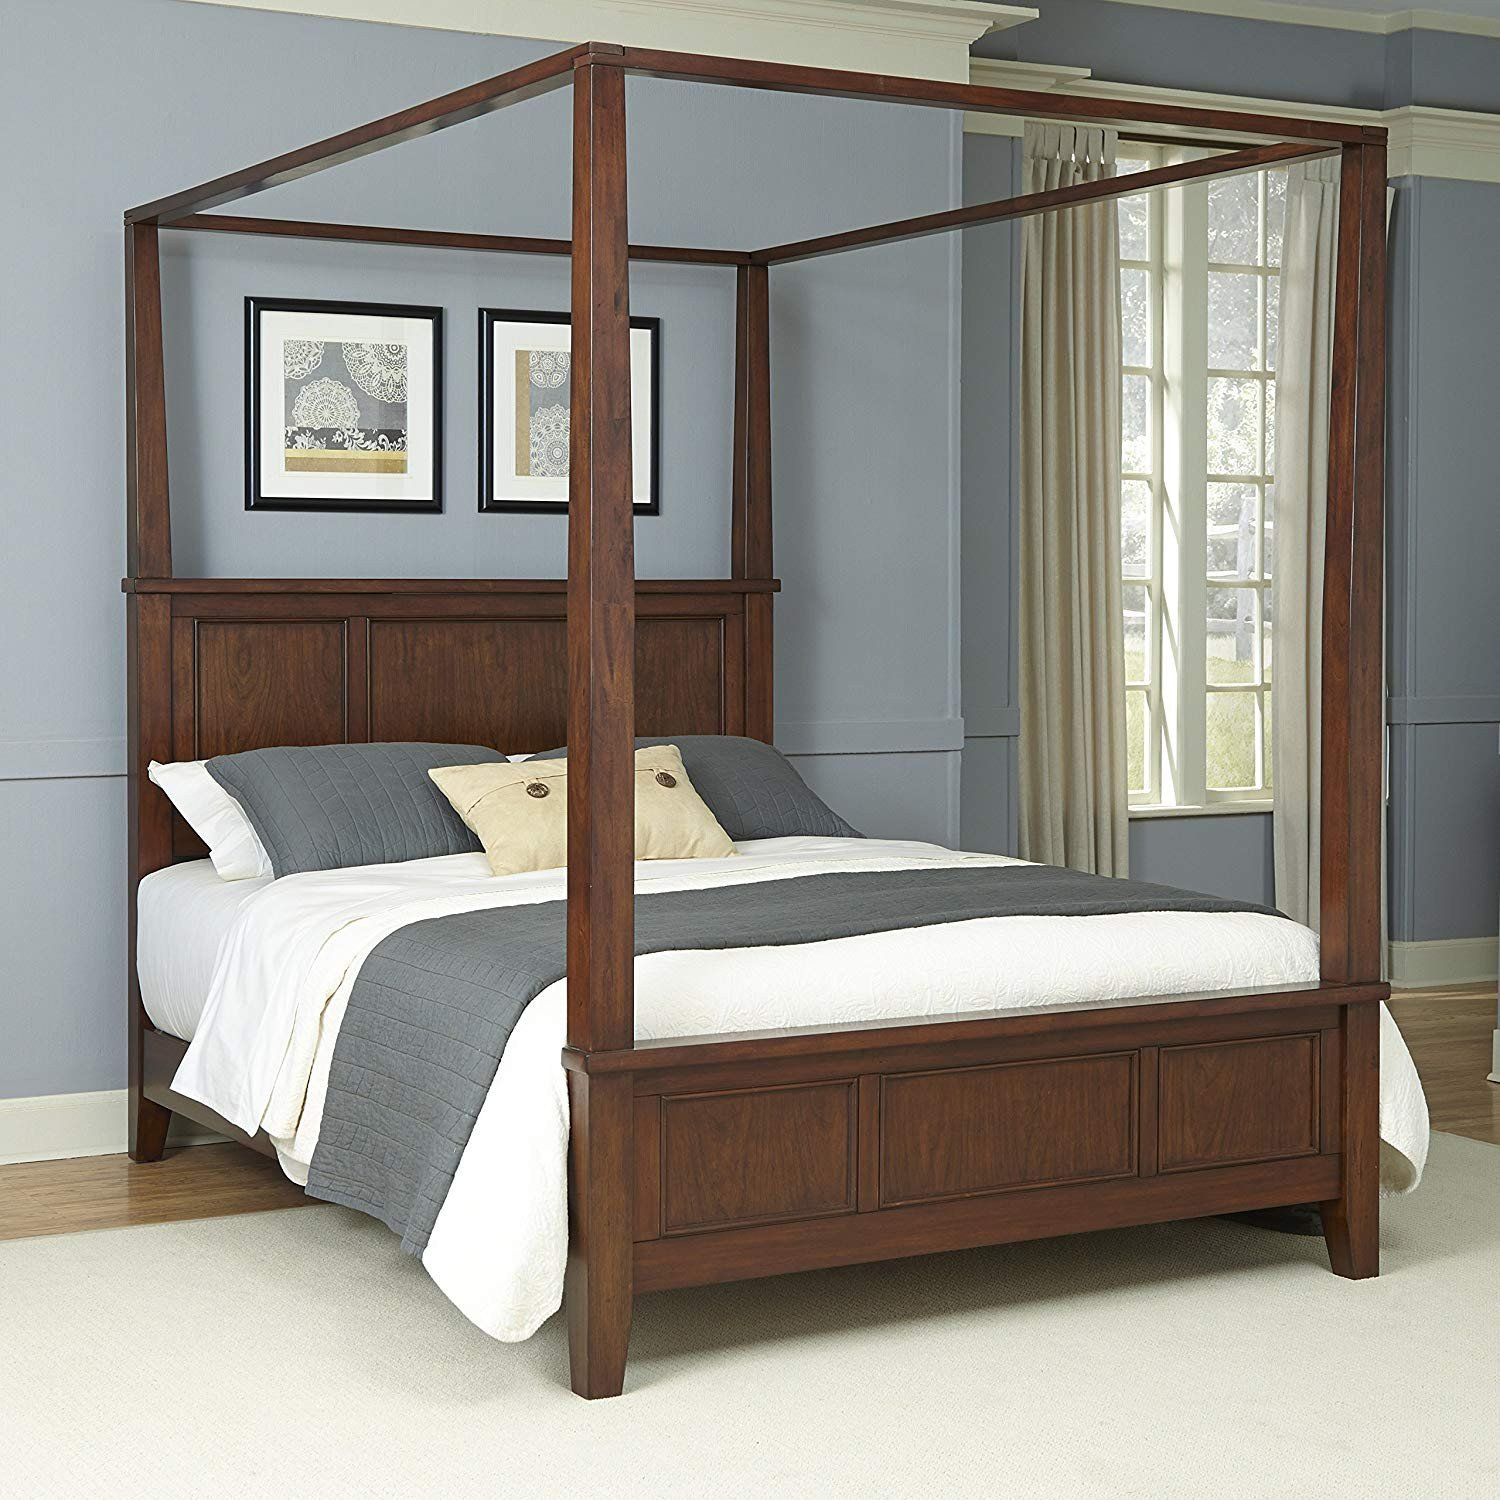 California King Canopy Bedroom Set Inspirational Amazon Chesapeake Classic Cherry King Canopy Bed and